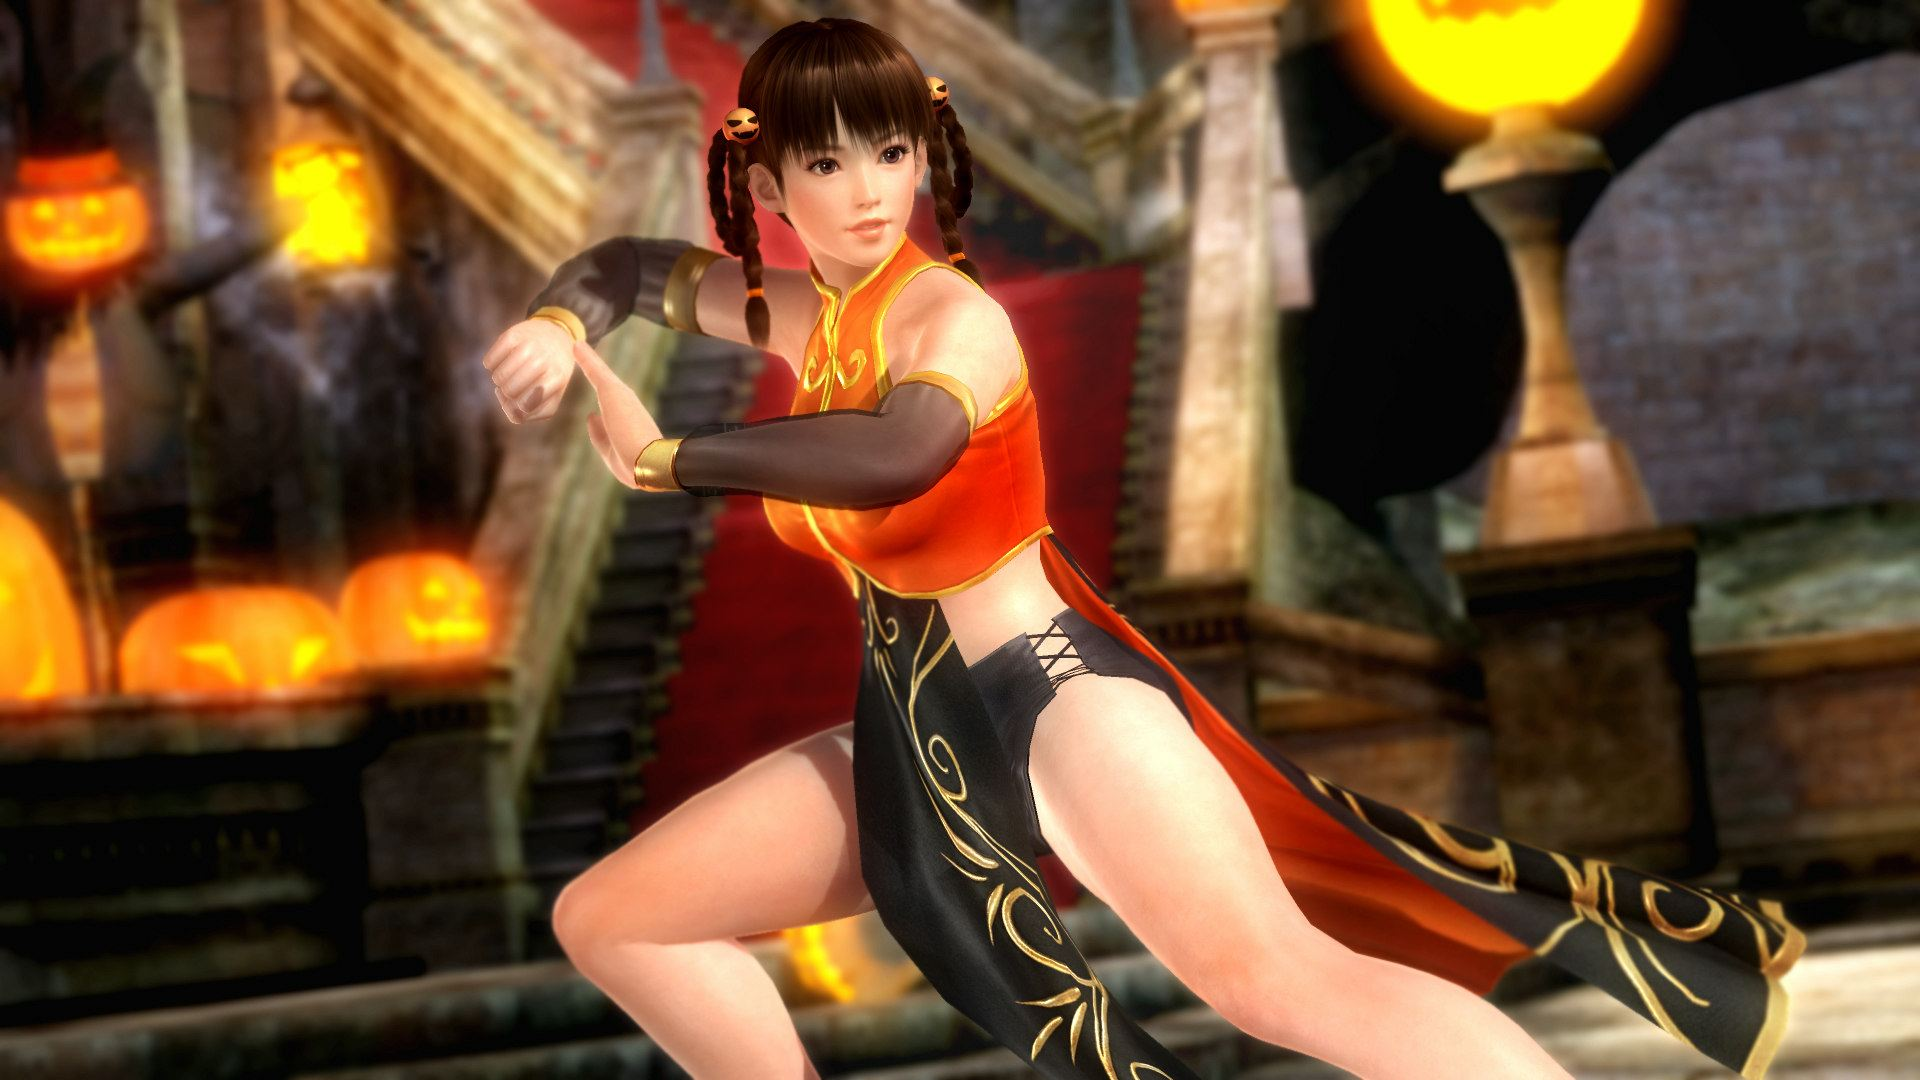 Dead or Alive 5: Last Round - Halloween - Dead or Alive 5: Last Round DLC, Арт, Костюм, Хеллоуин